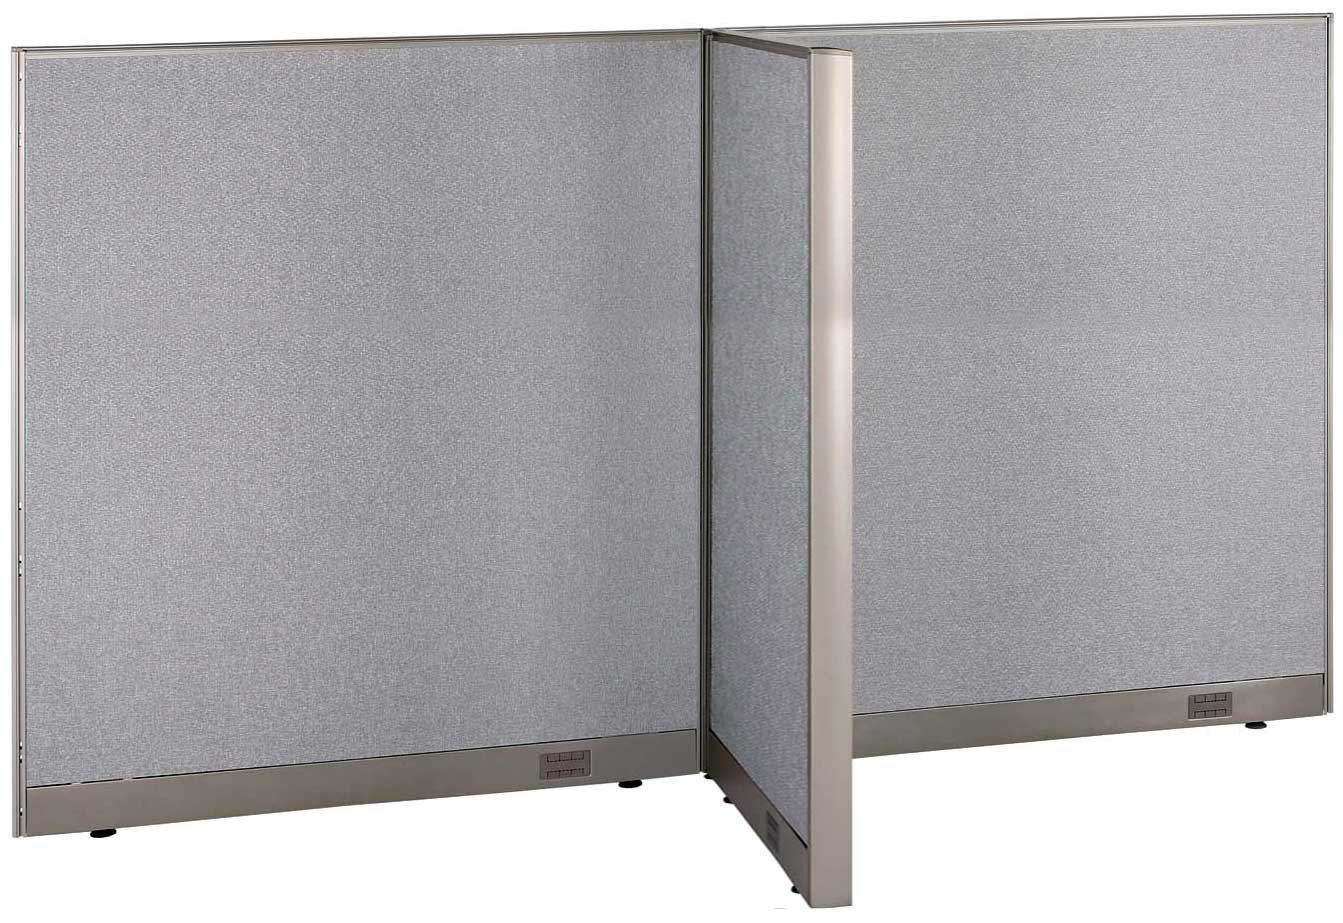 "GOF T-Shaped Freestanding Partition 30""D x 96""W x 60""H / Office, Room Divider (30D x 96W x 60H)"